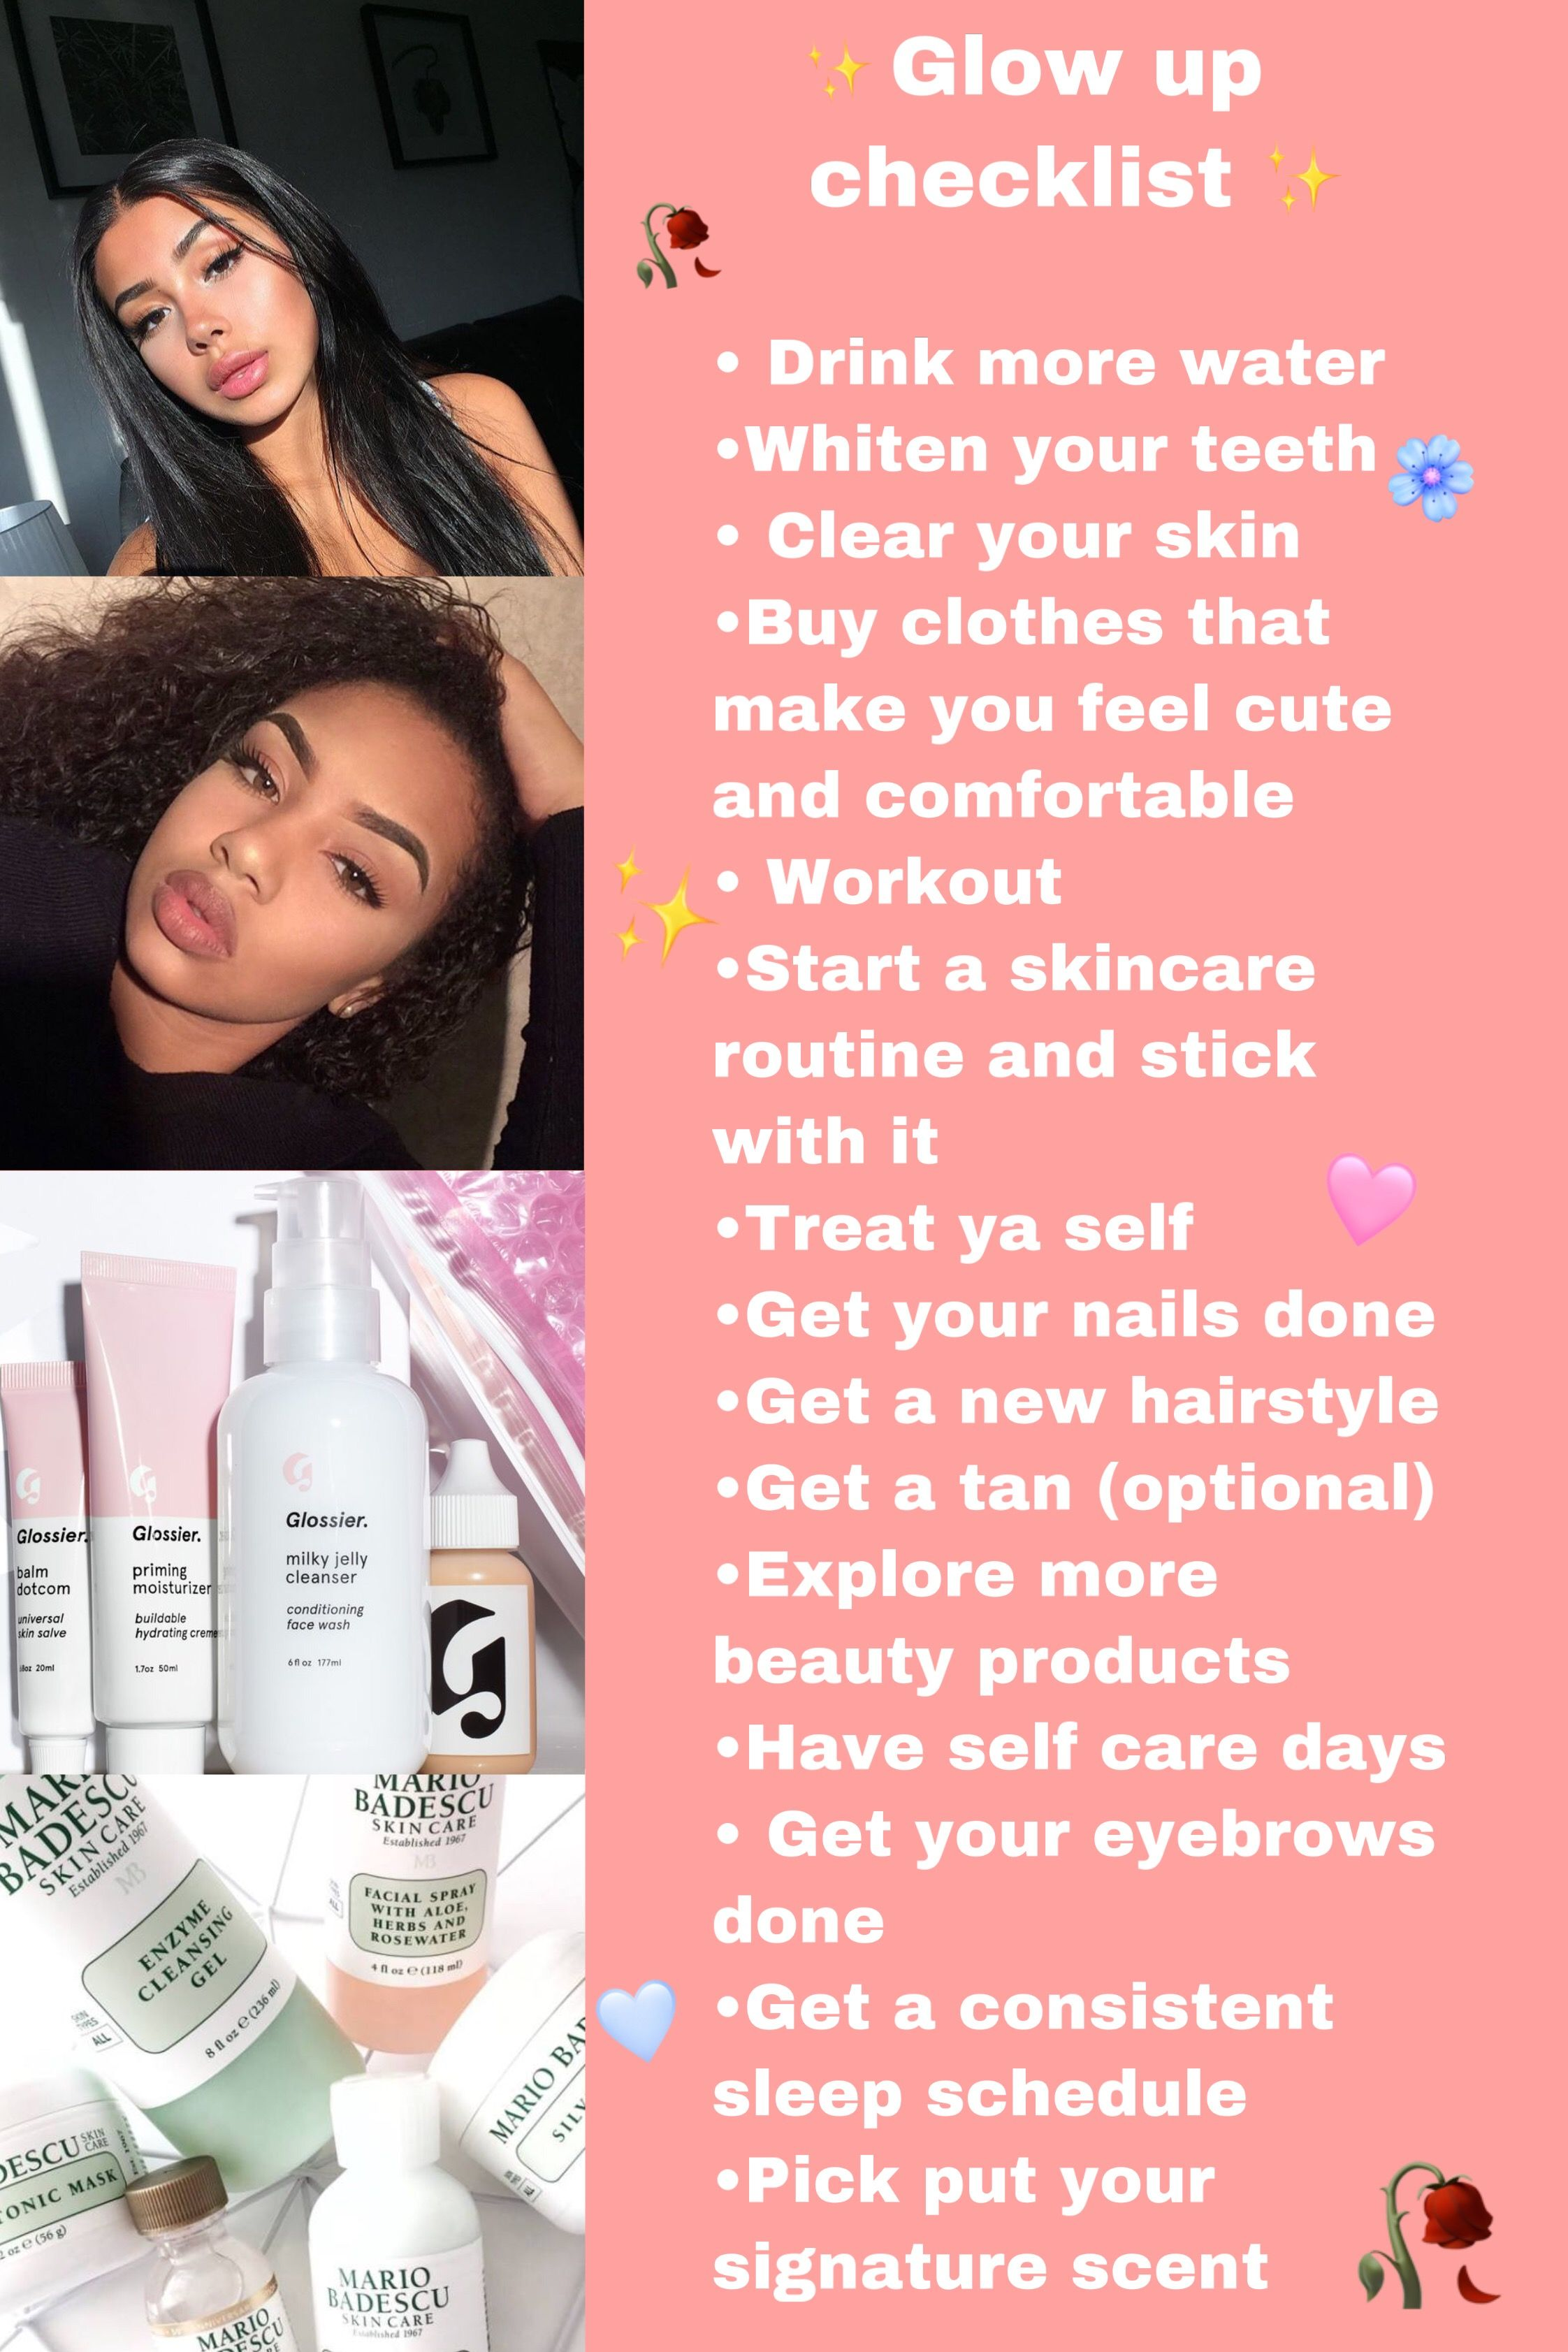 larnz  Combination skin care, Clear skin tips, Glow up tips